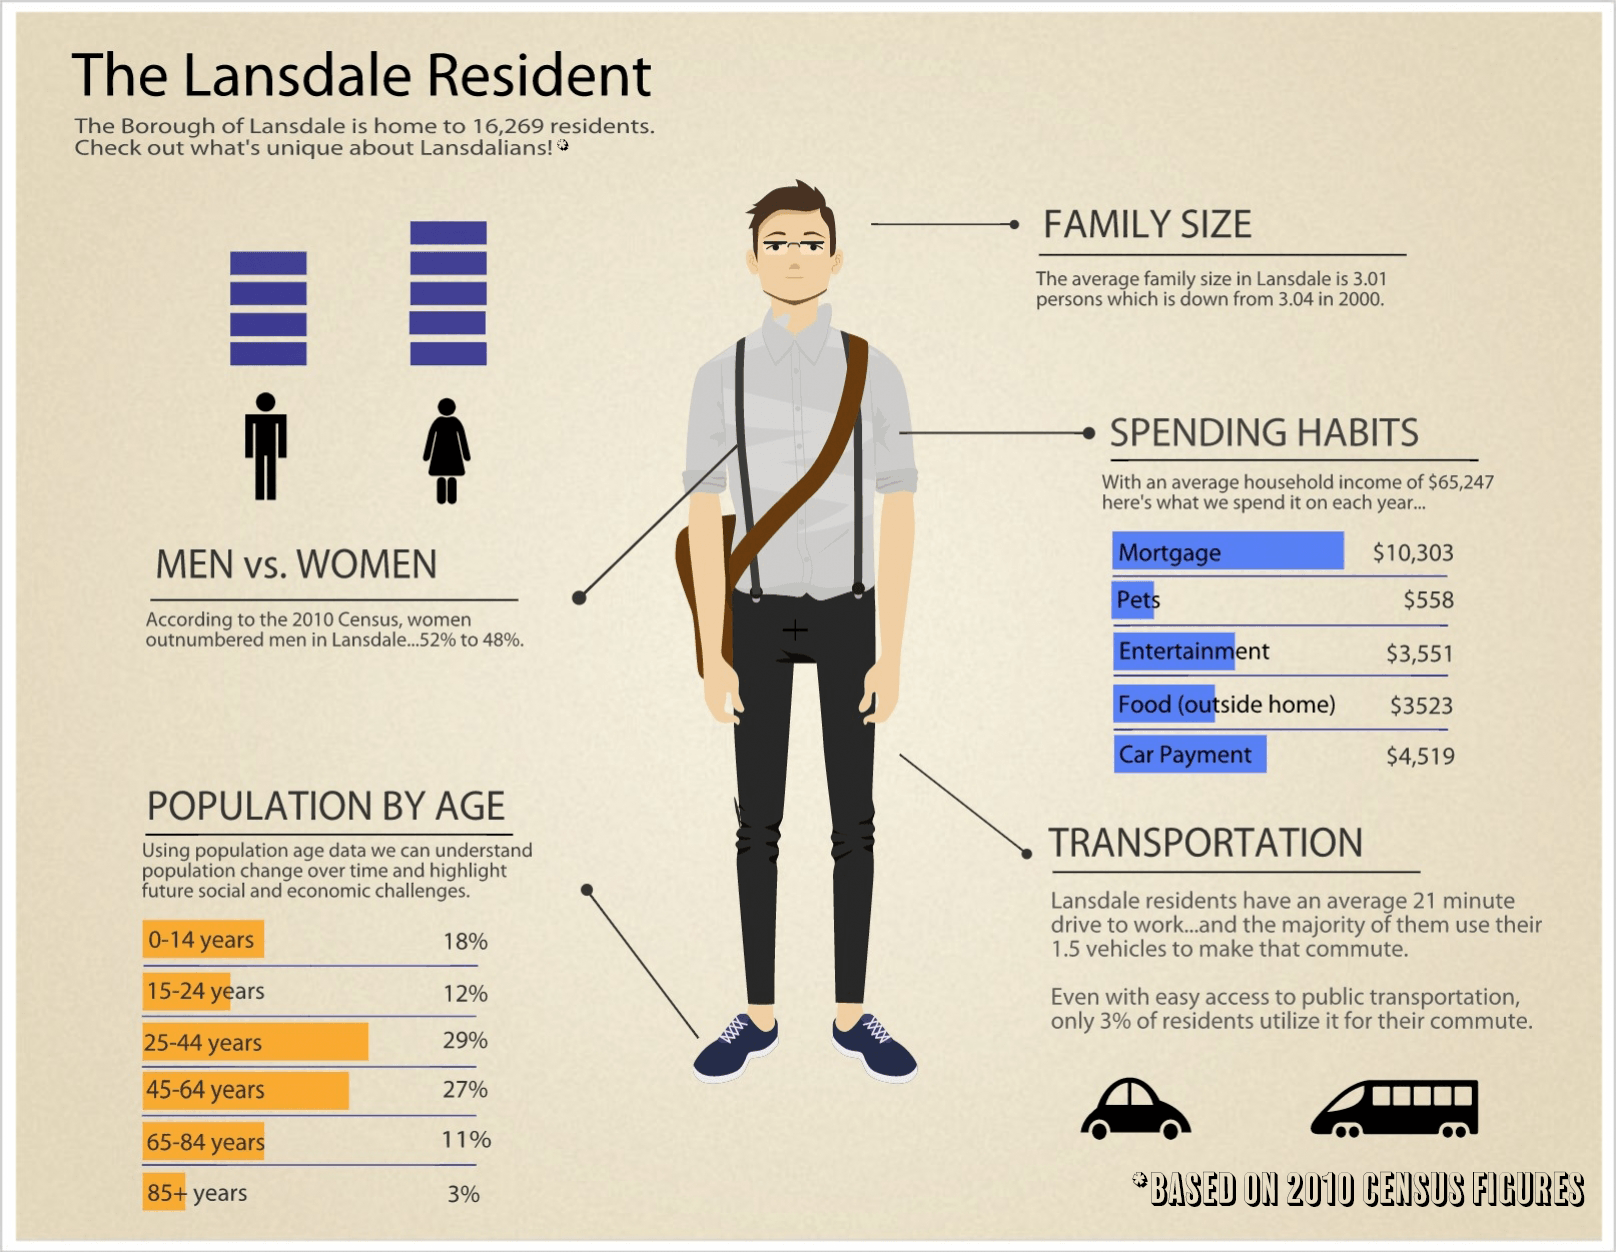 The Lansdale Resident